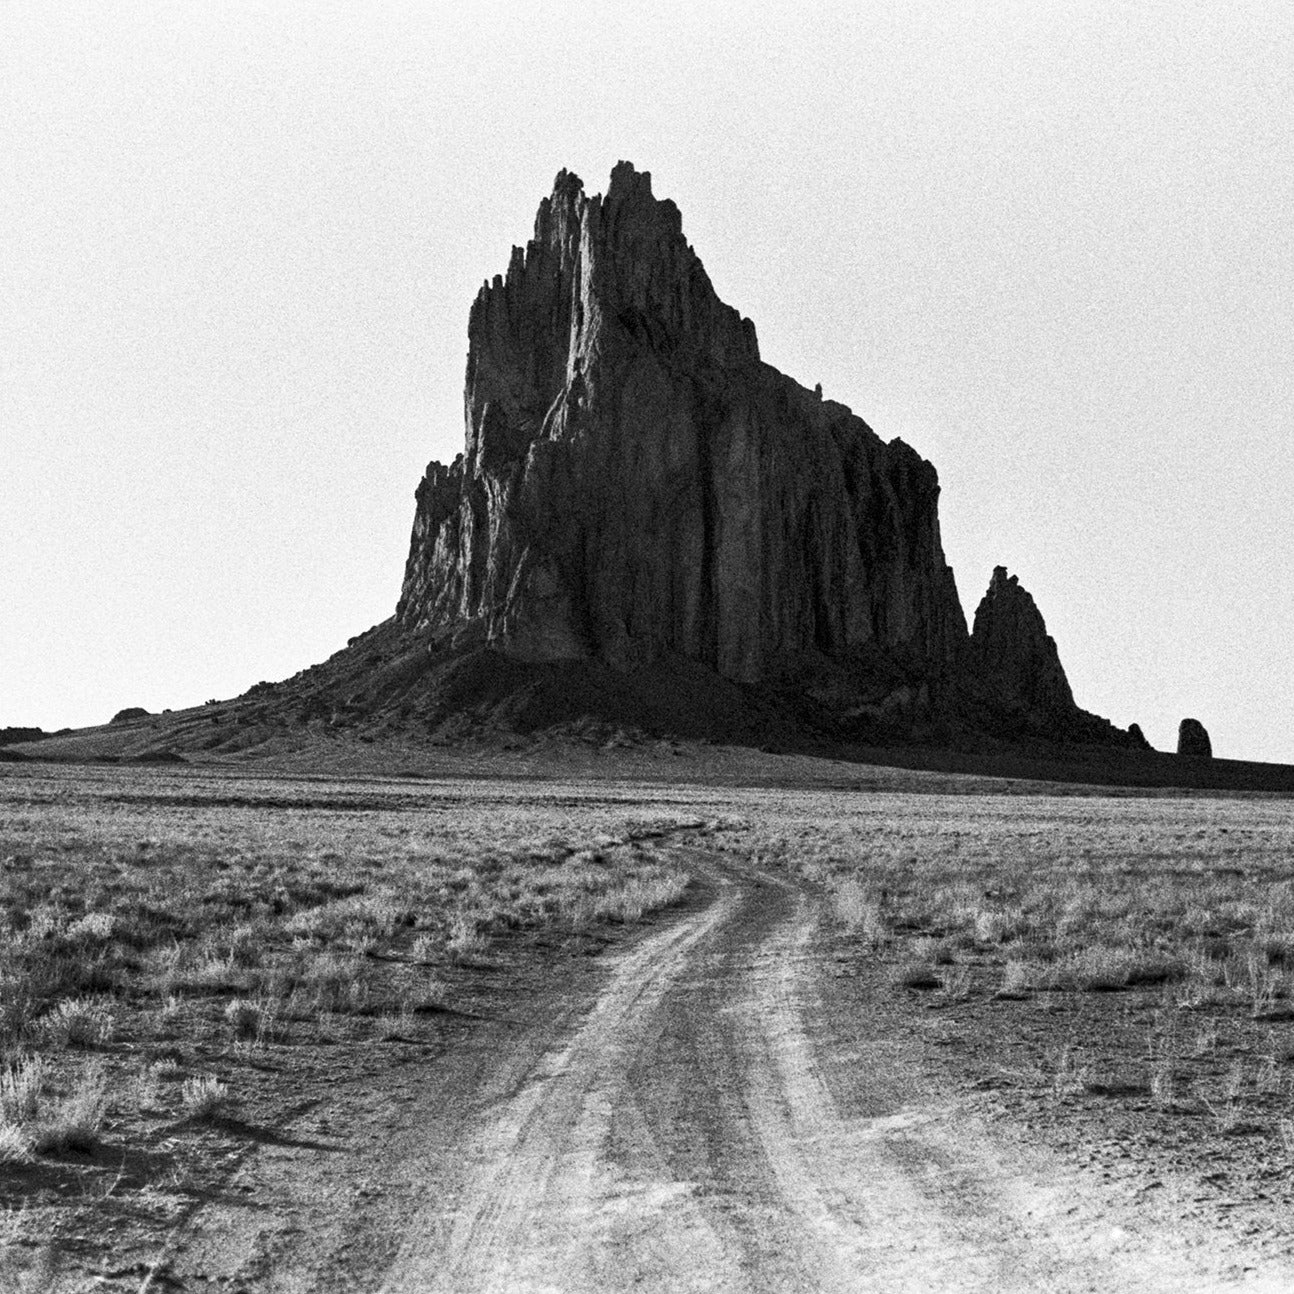 Shiprock New Mexico - Artwork - Original – Shoppe Amber Interiors